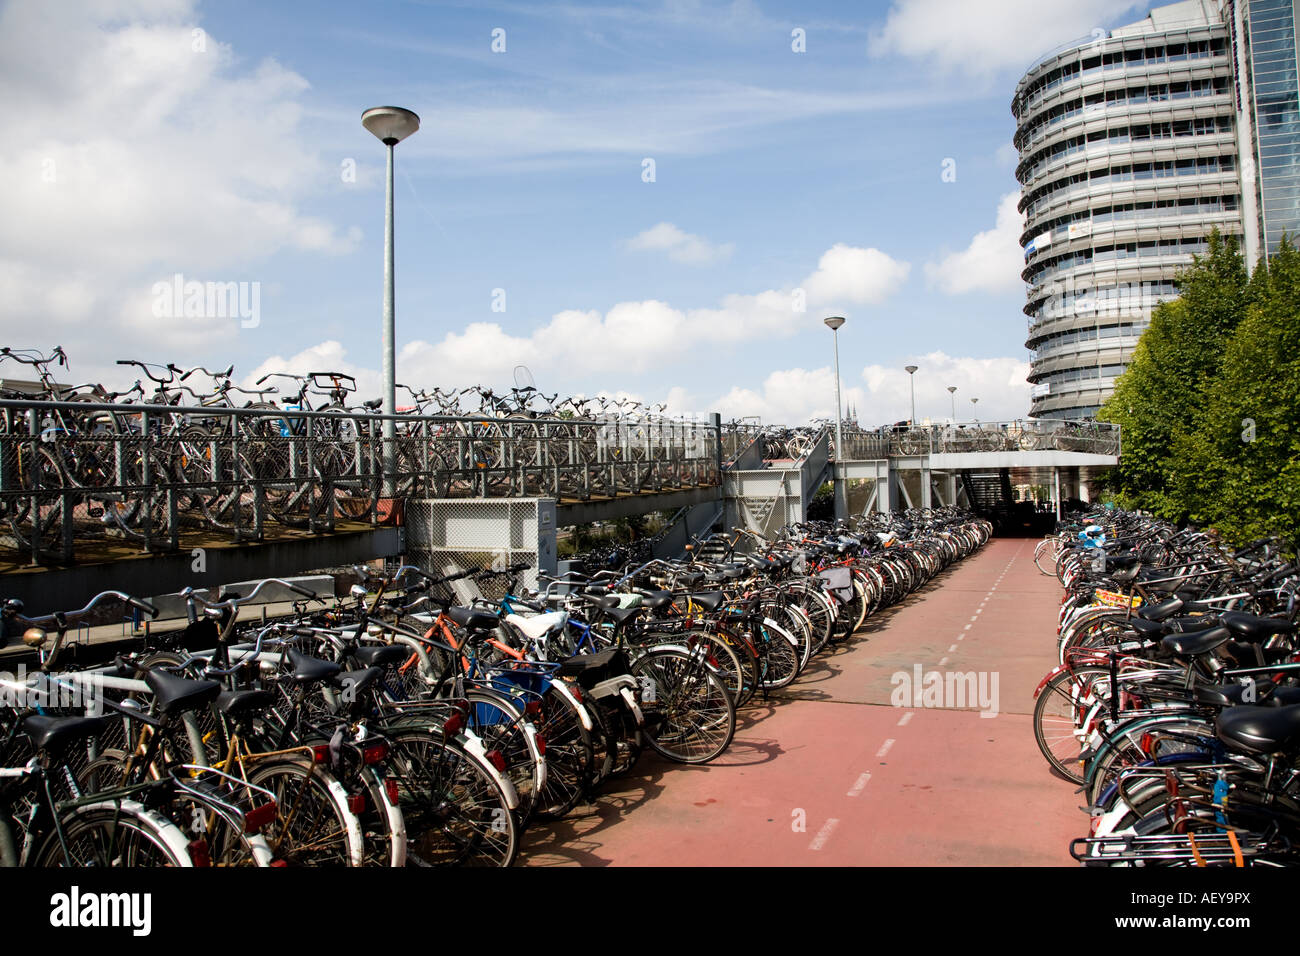 Bicycle Parking Central Train Station Amsterdam